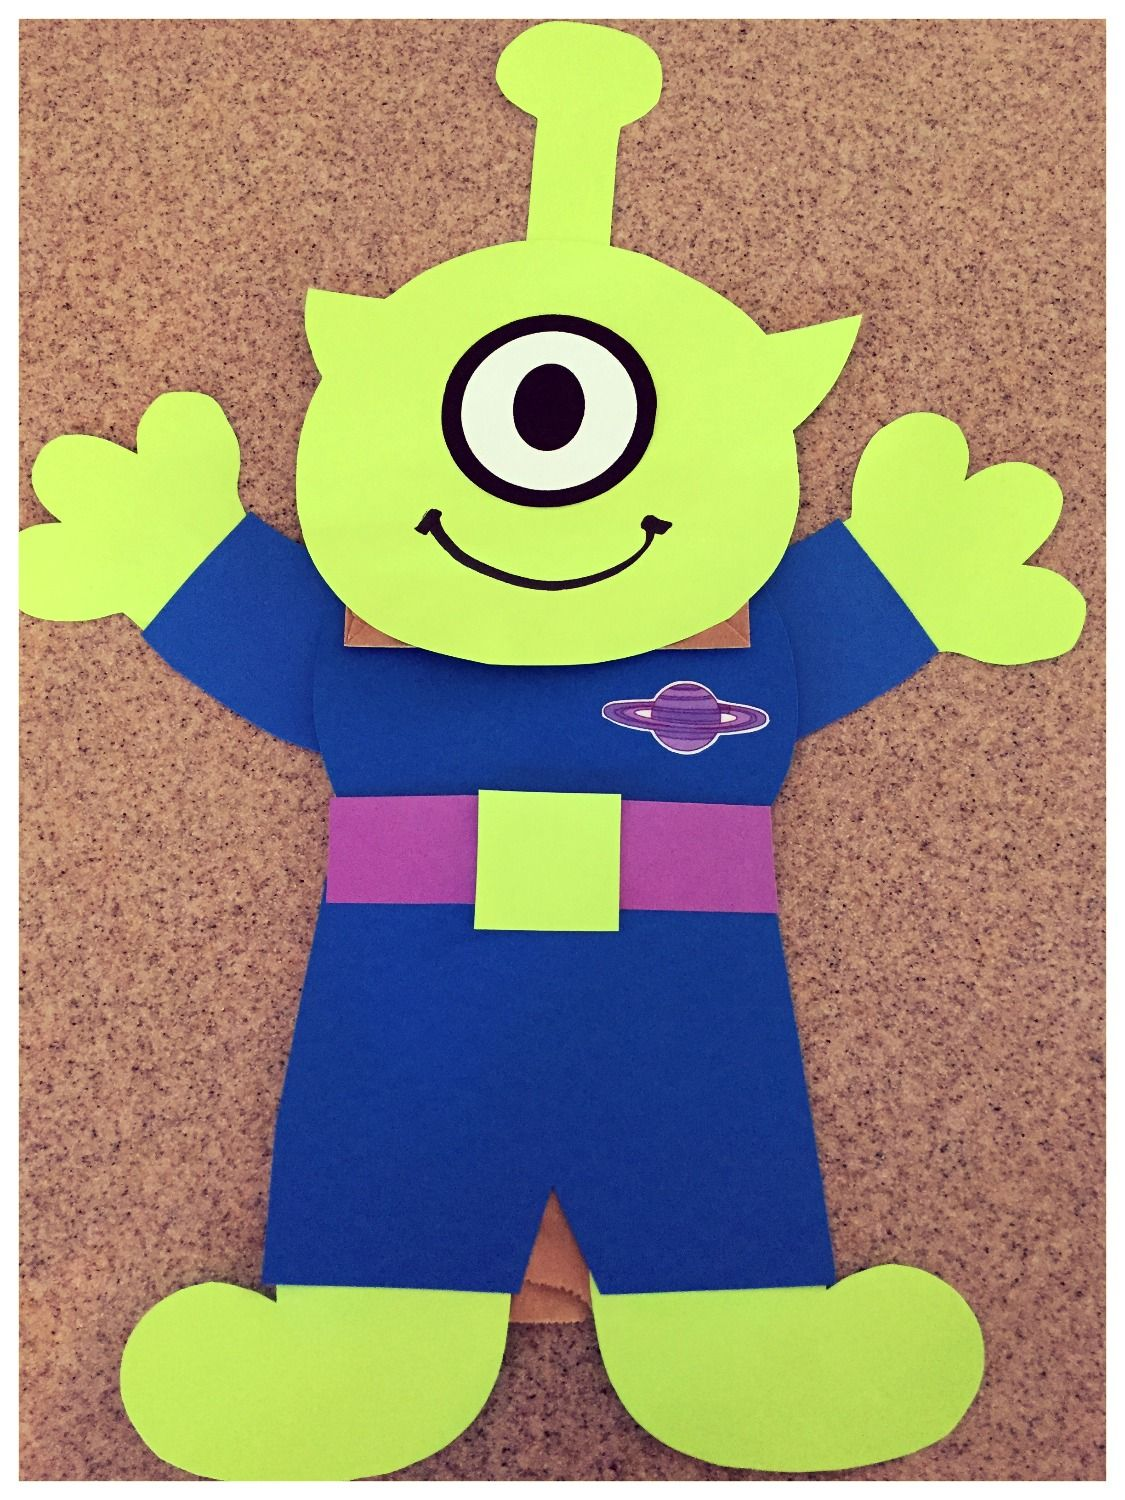 Kidfunideas Alien Paper Bag Puppet A Fun And Easy Space Themed Craft For